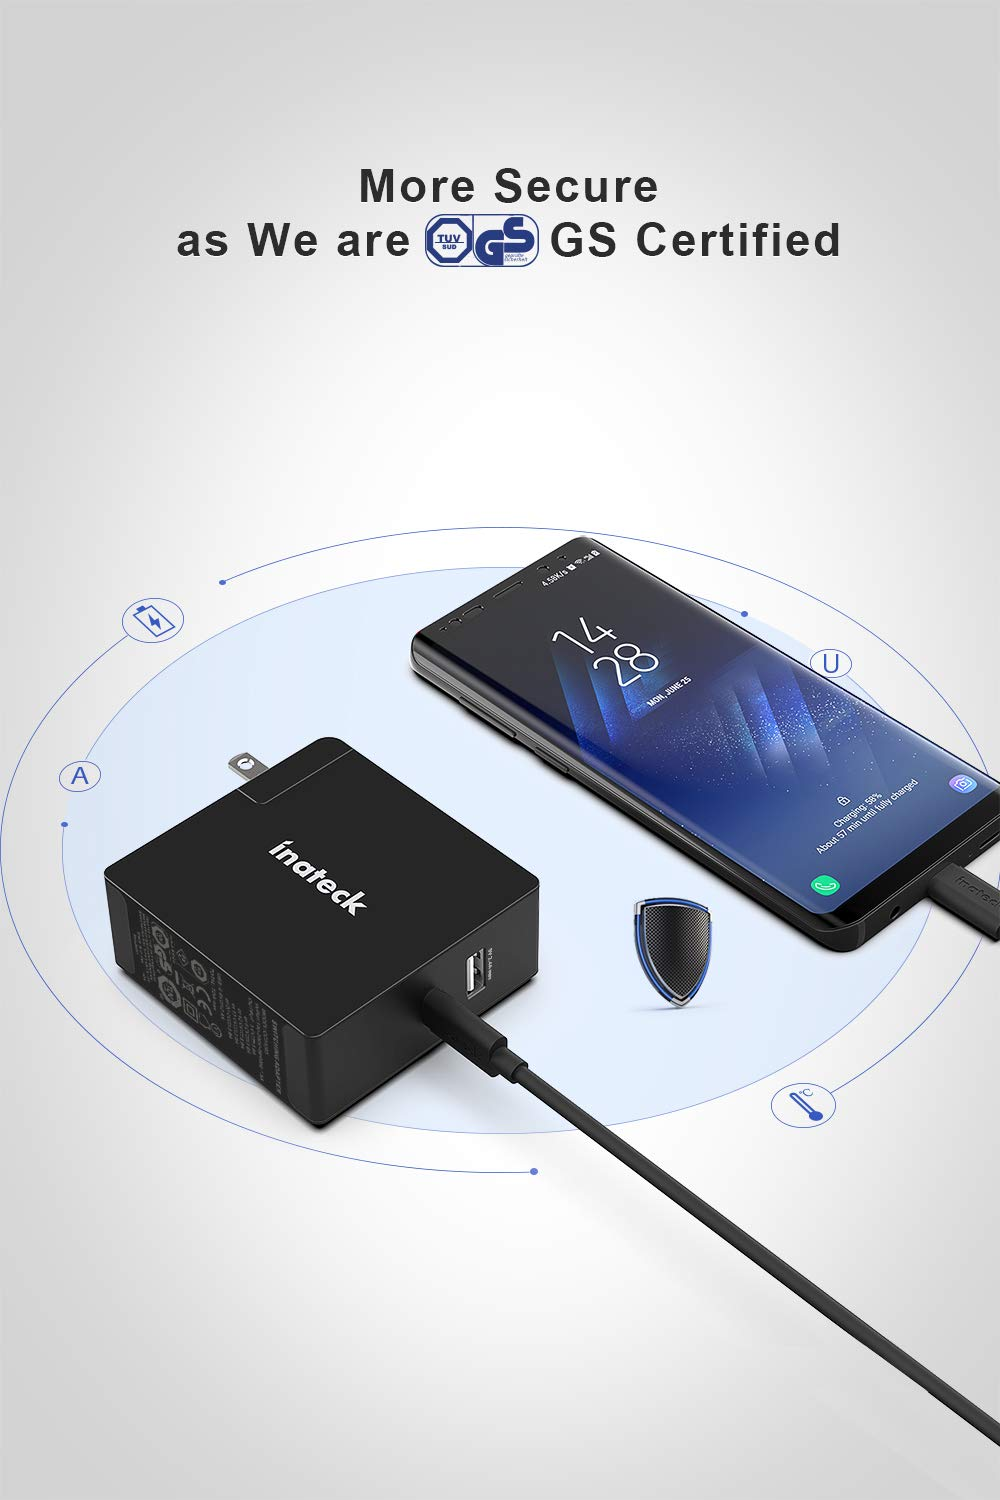 Type C Cable Included,CC01003,Black 2 Meters Inateck USB C USB Charger,60W USB C and 5V//2.4A USB ports,6.6ft